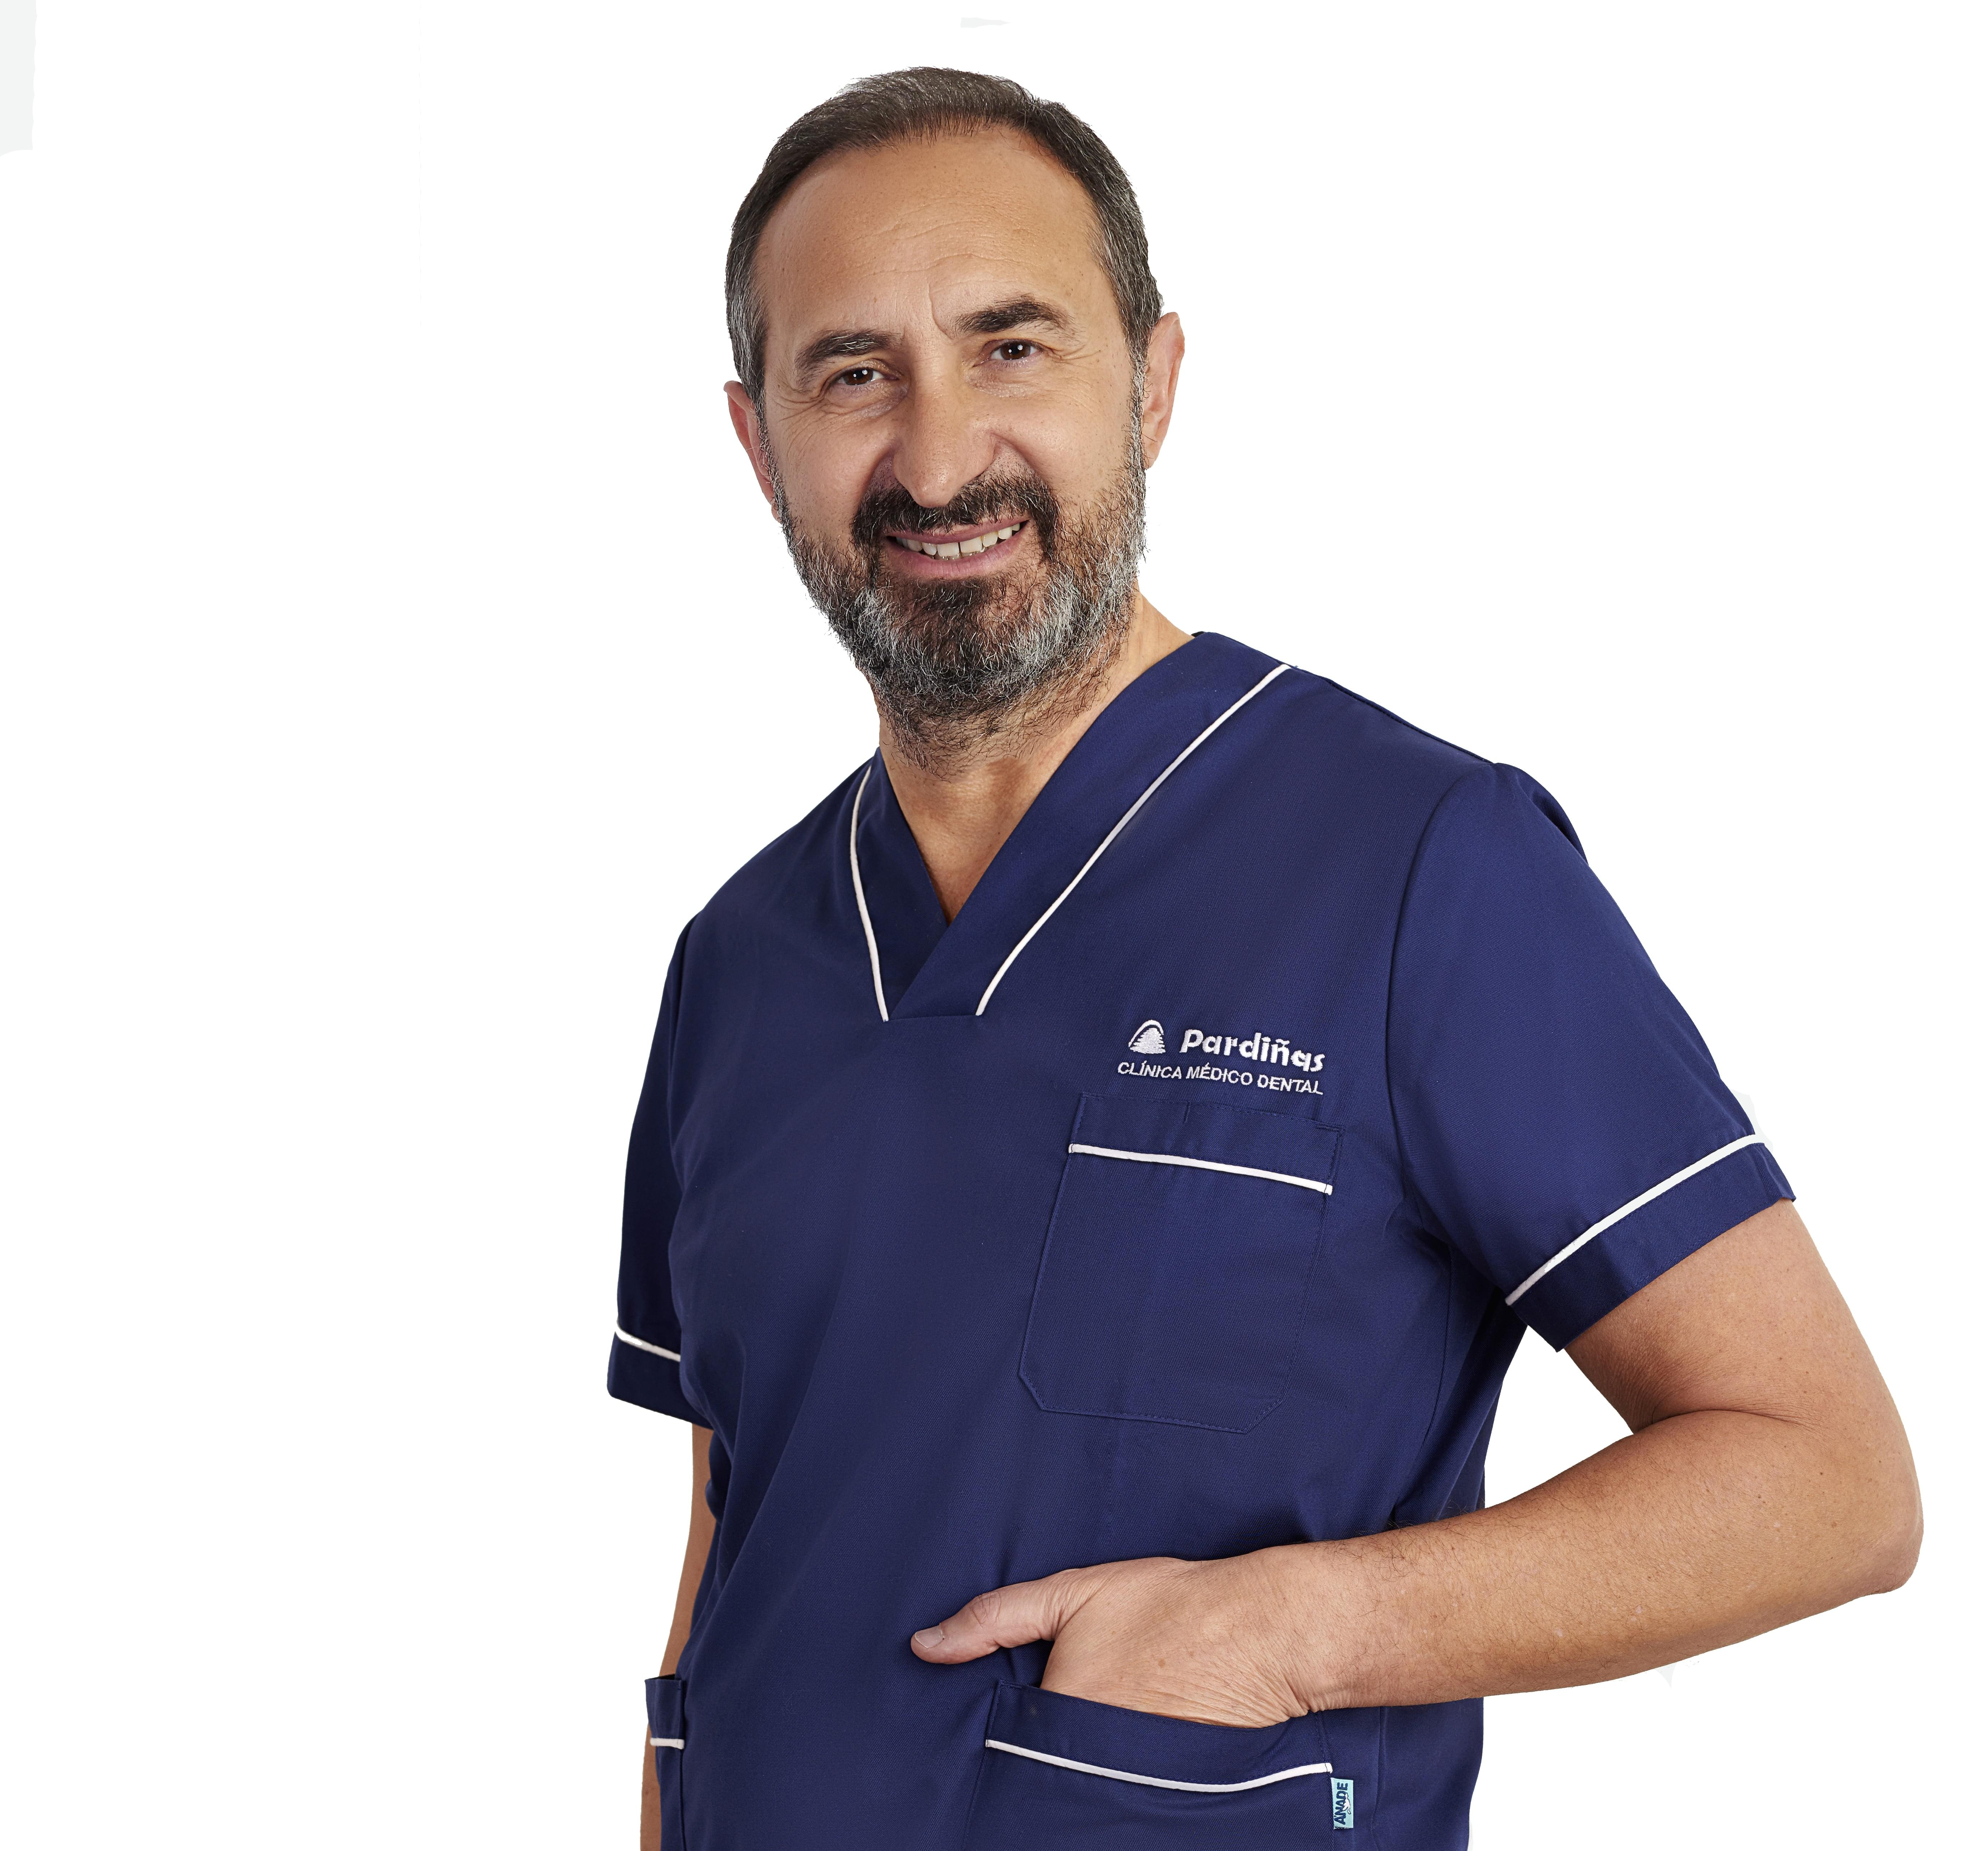 Dr. José Pardiñas Arias: Medical Doctor